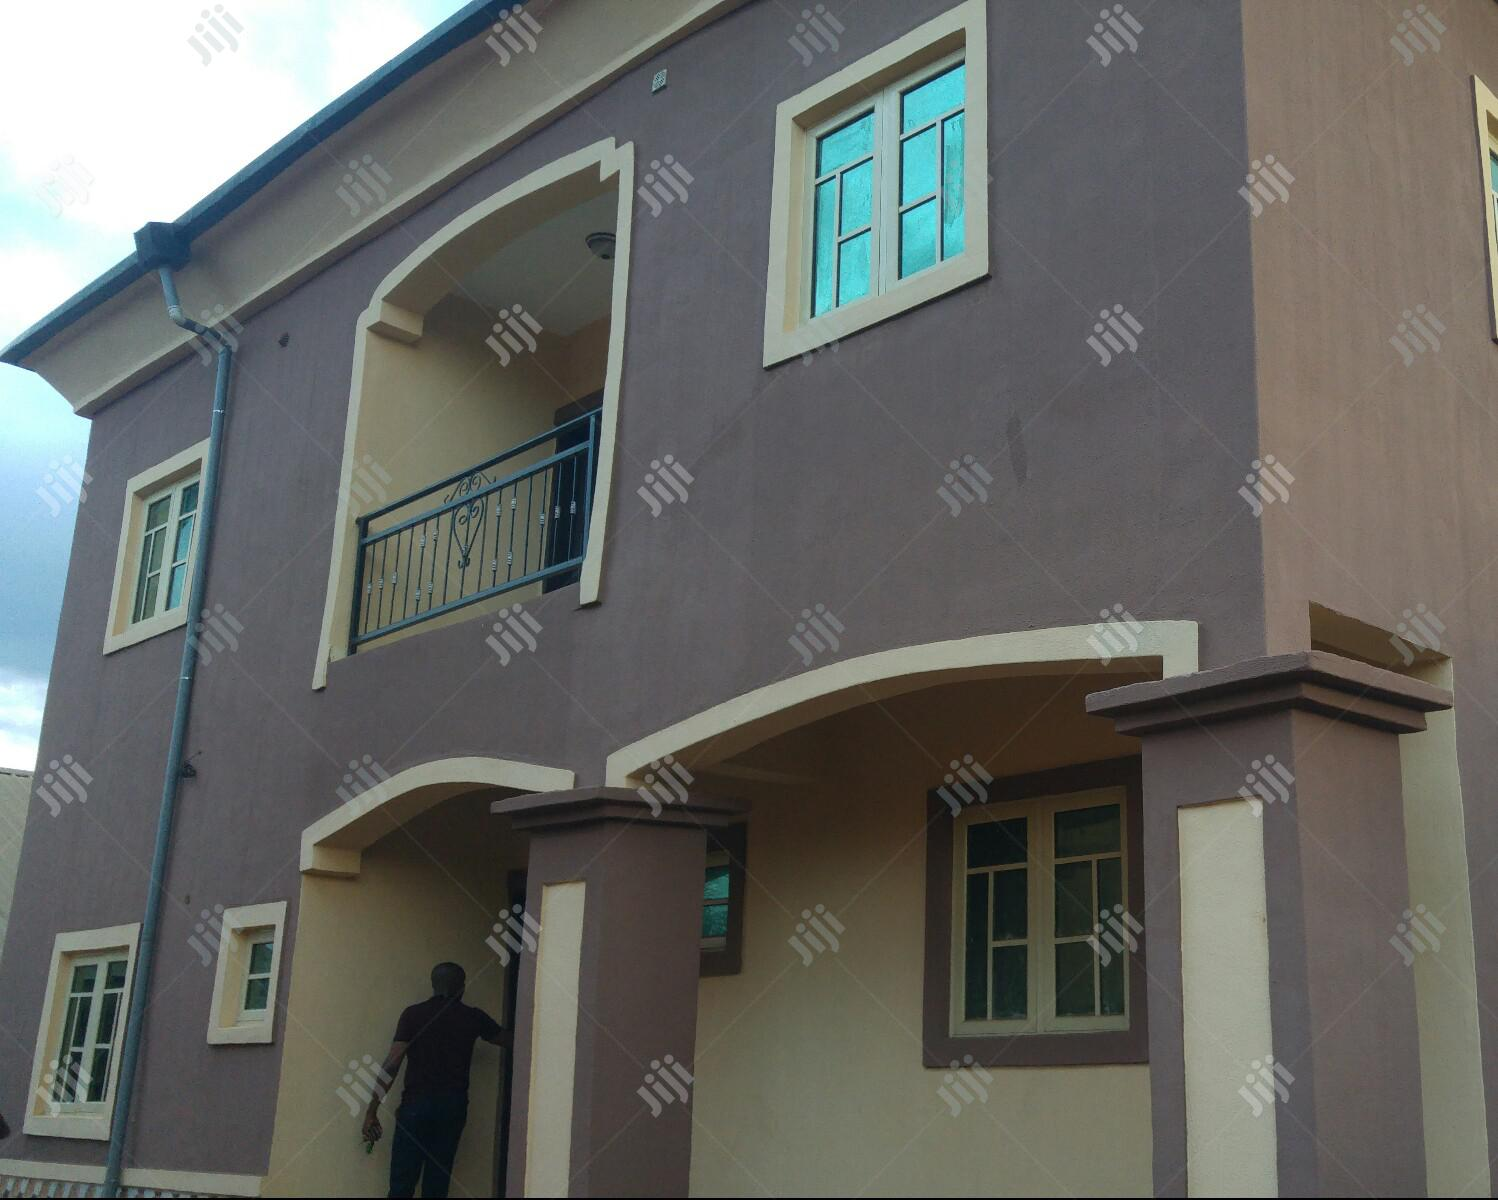 Brand New 6 Bedroom Duplex For Rent | Houses & Apartments For Rent for sale in Enugu, Enugu State, Nigeria